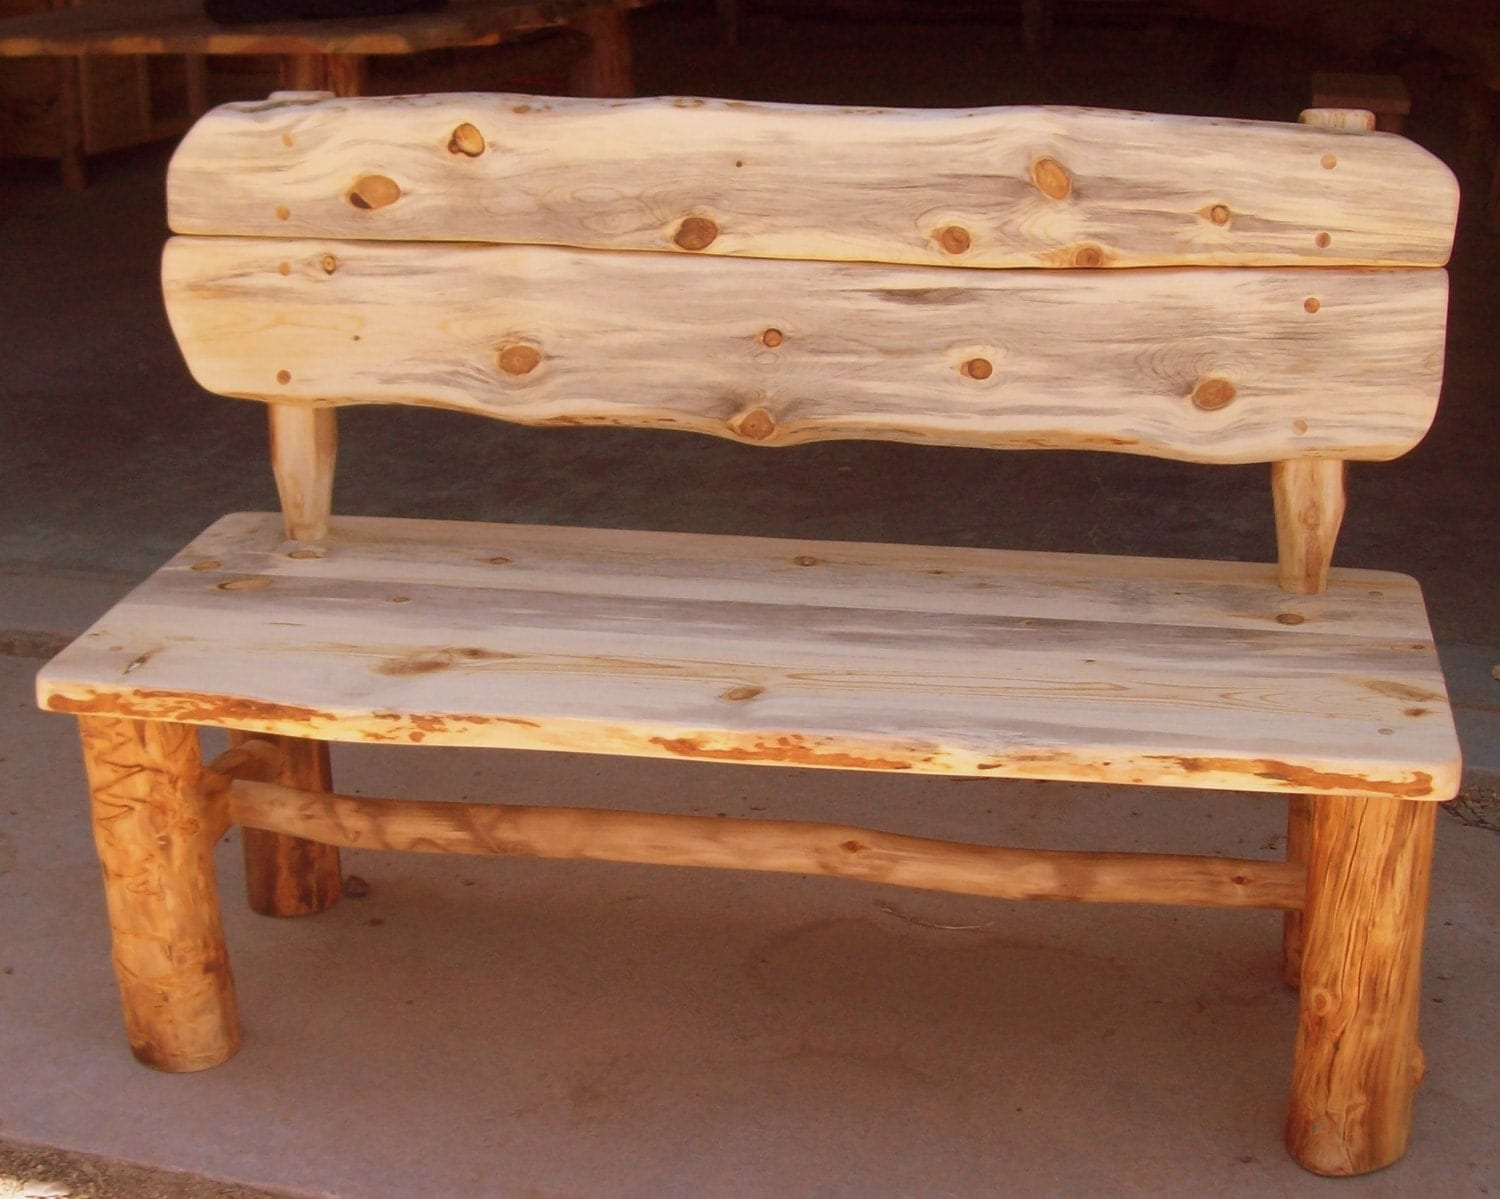 How To Make Rustic Wood Furniture Furniture Design Ideas : ilfullxfull467987627pbv4 from furnitureartideas.blogspot.com size 1500 x 1199 jpeg 294kB